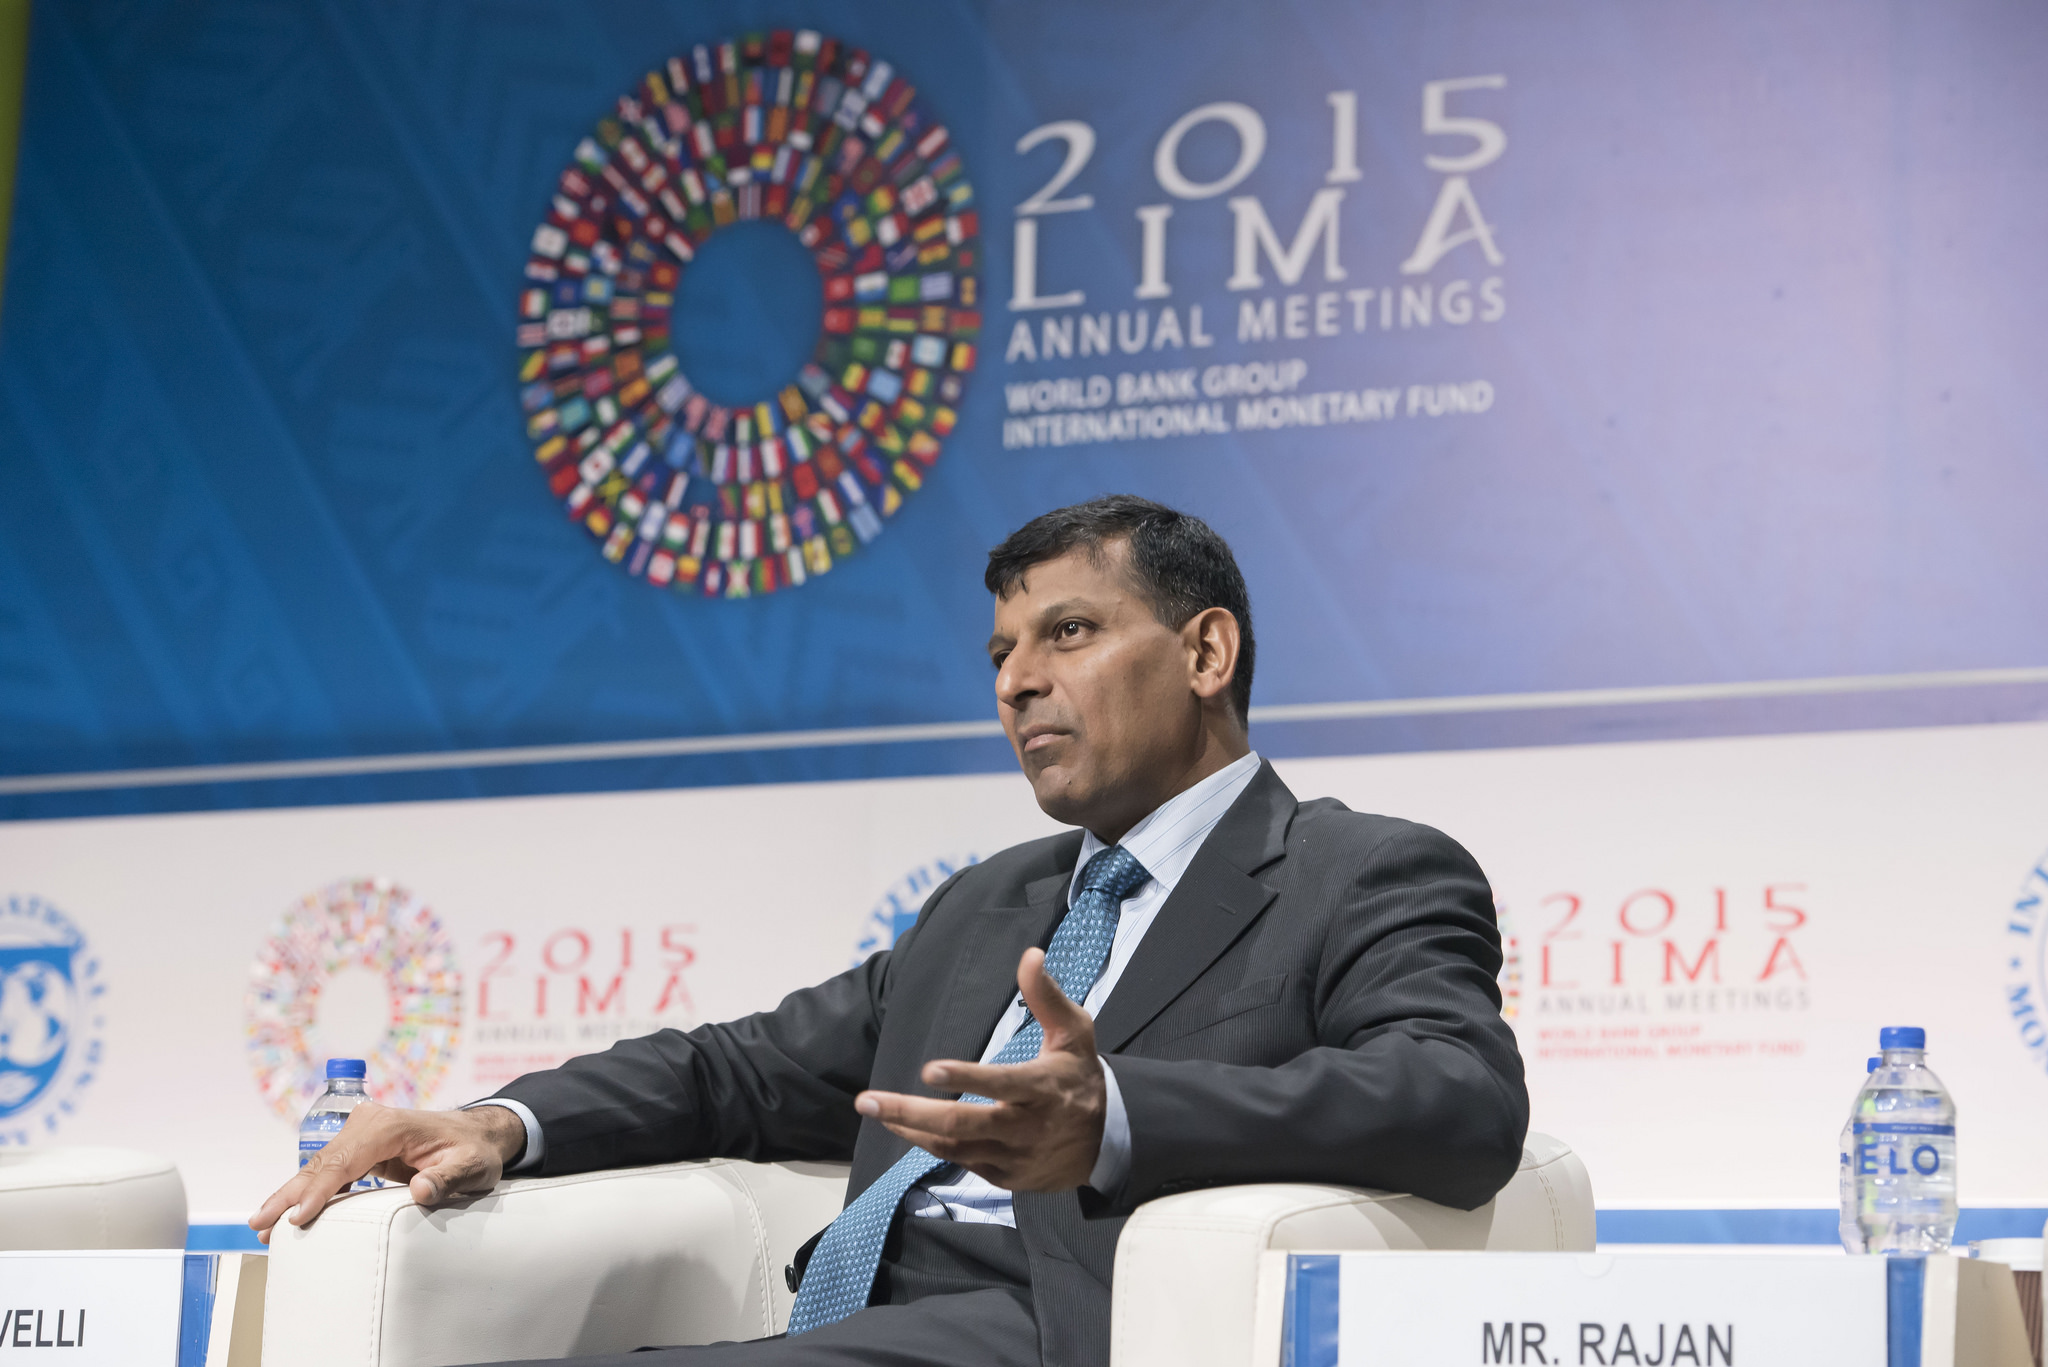 Raghuram Rajan Explains the Origins of India's NPA Crisis